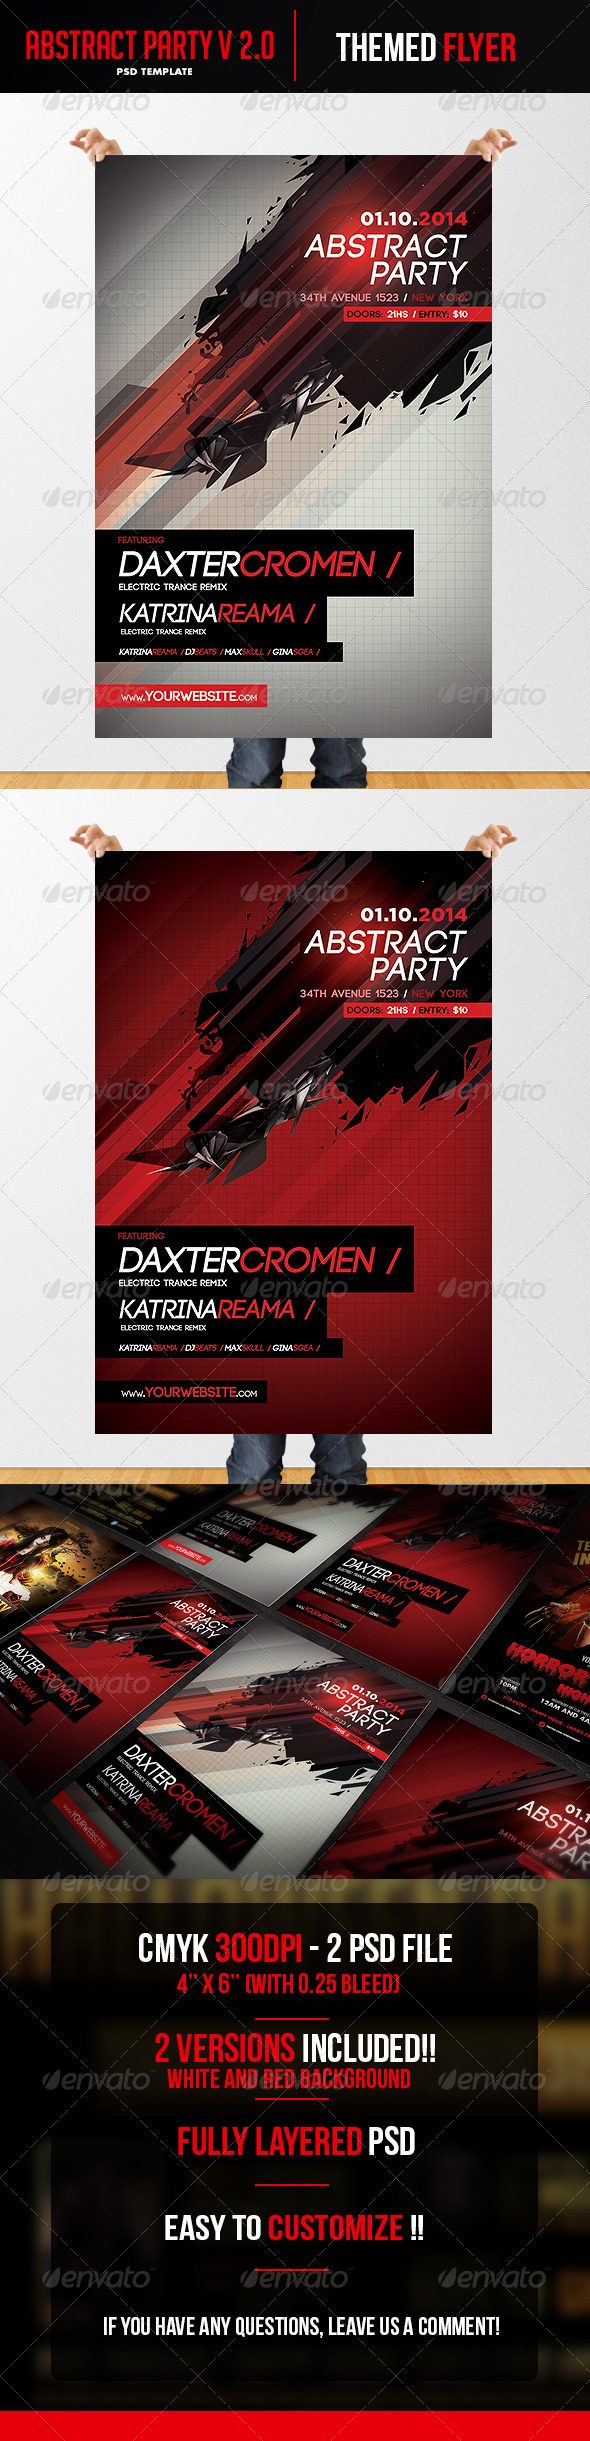 Abstract V2 Flyer Template